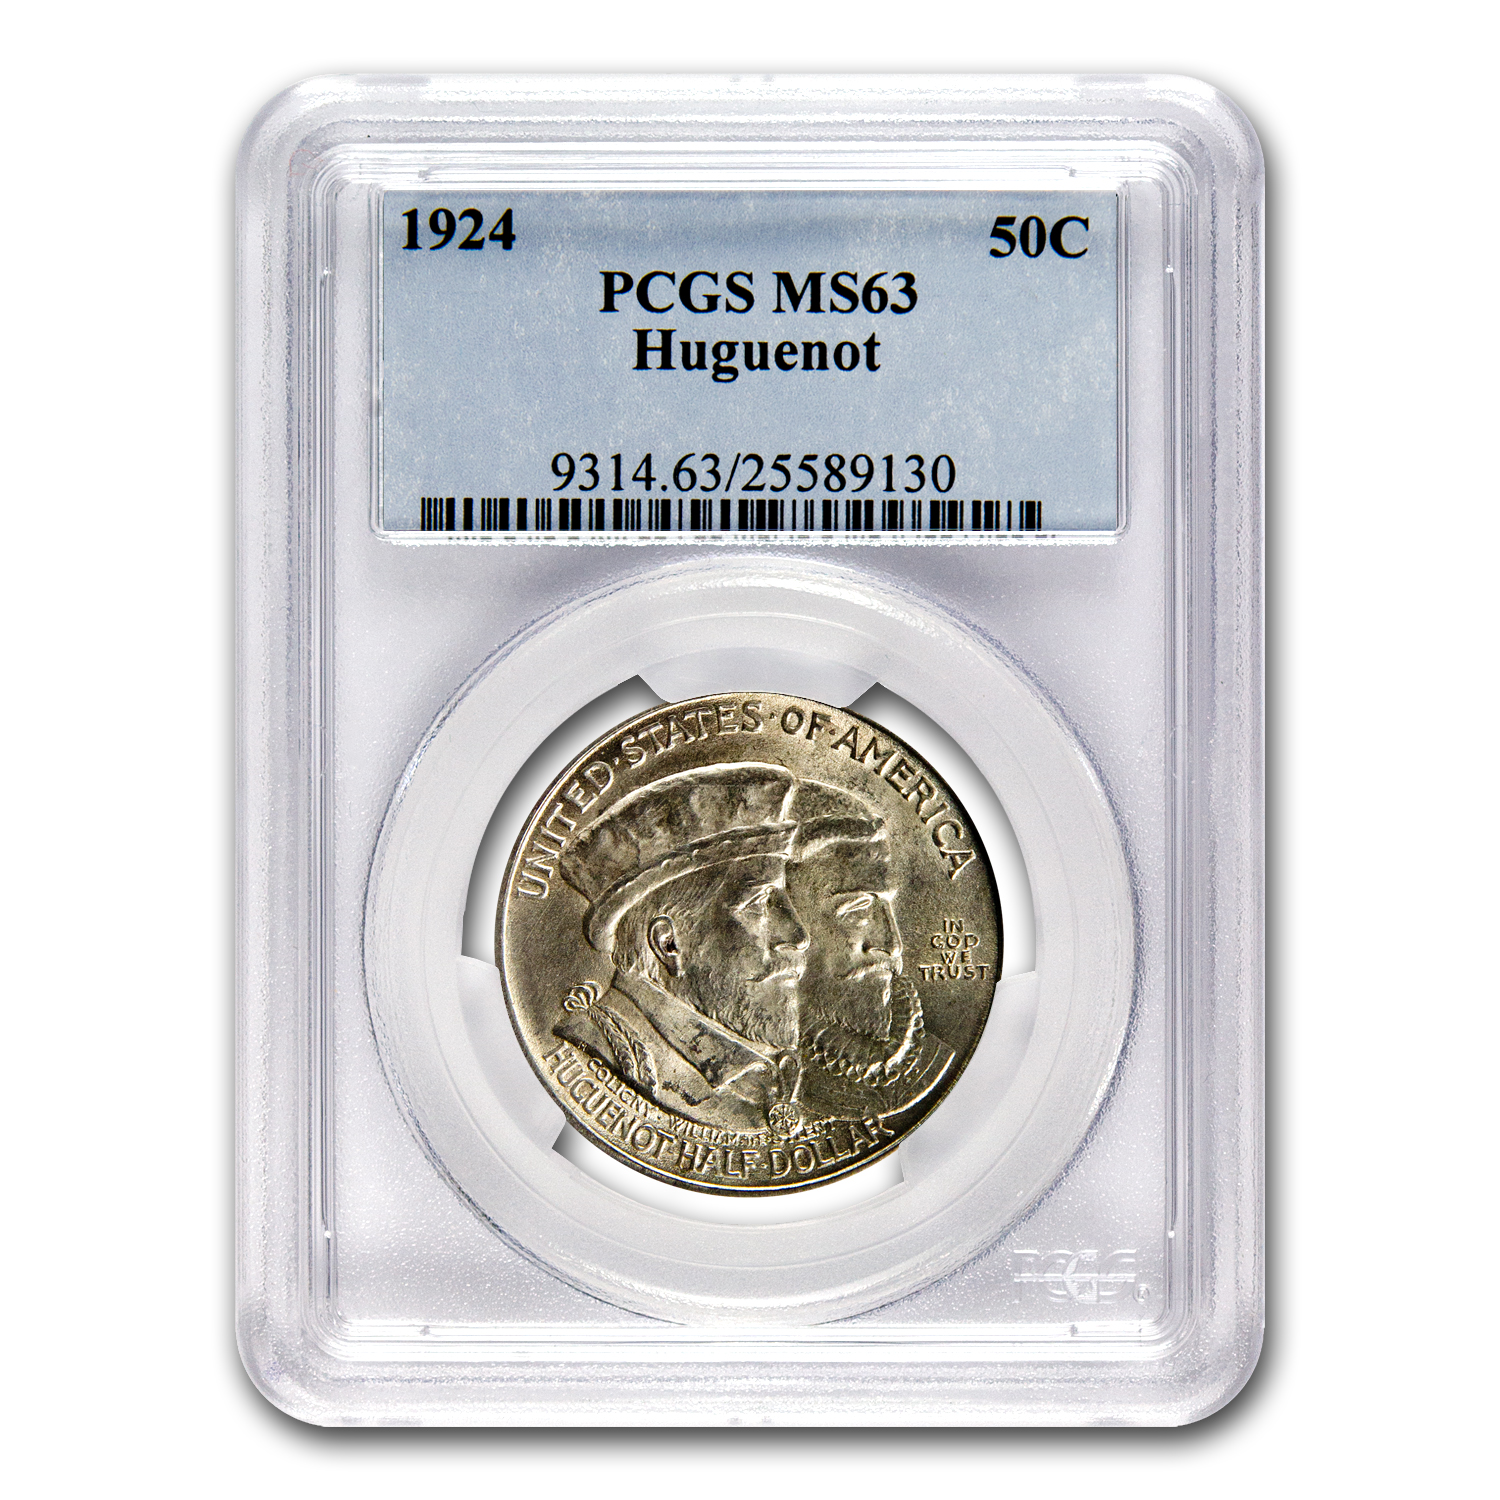 1924 Huguenot Commem Half Dollar MS-63 PCGS